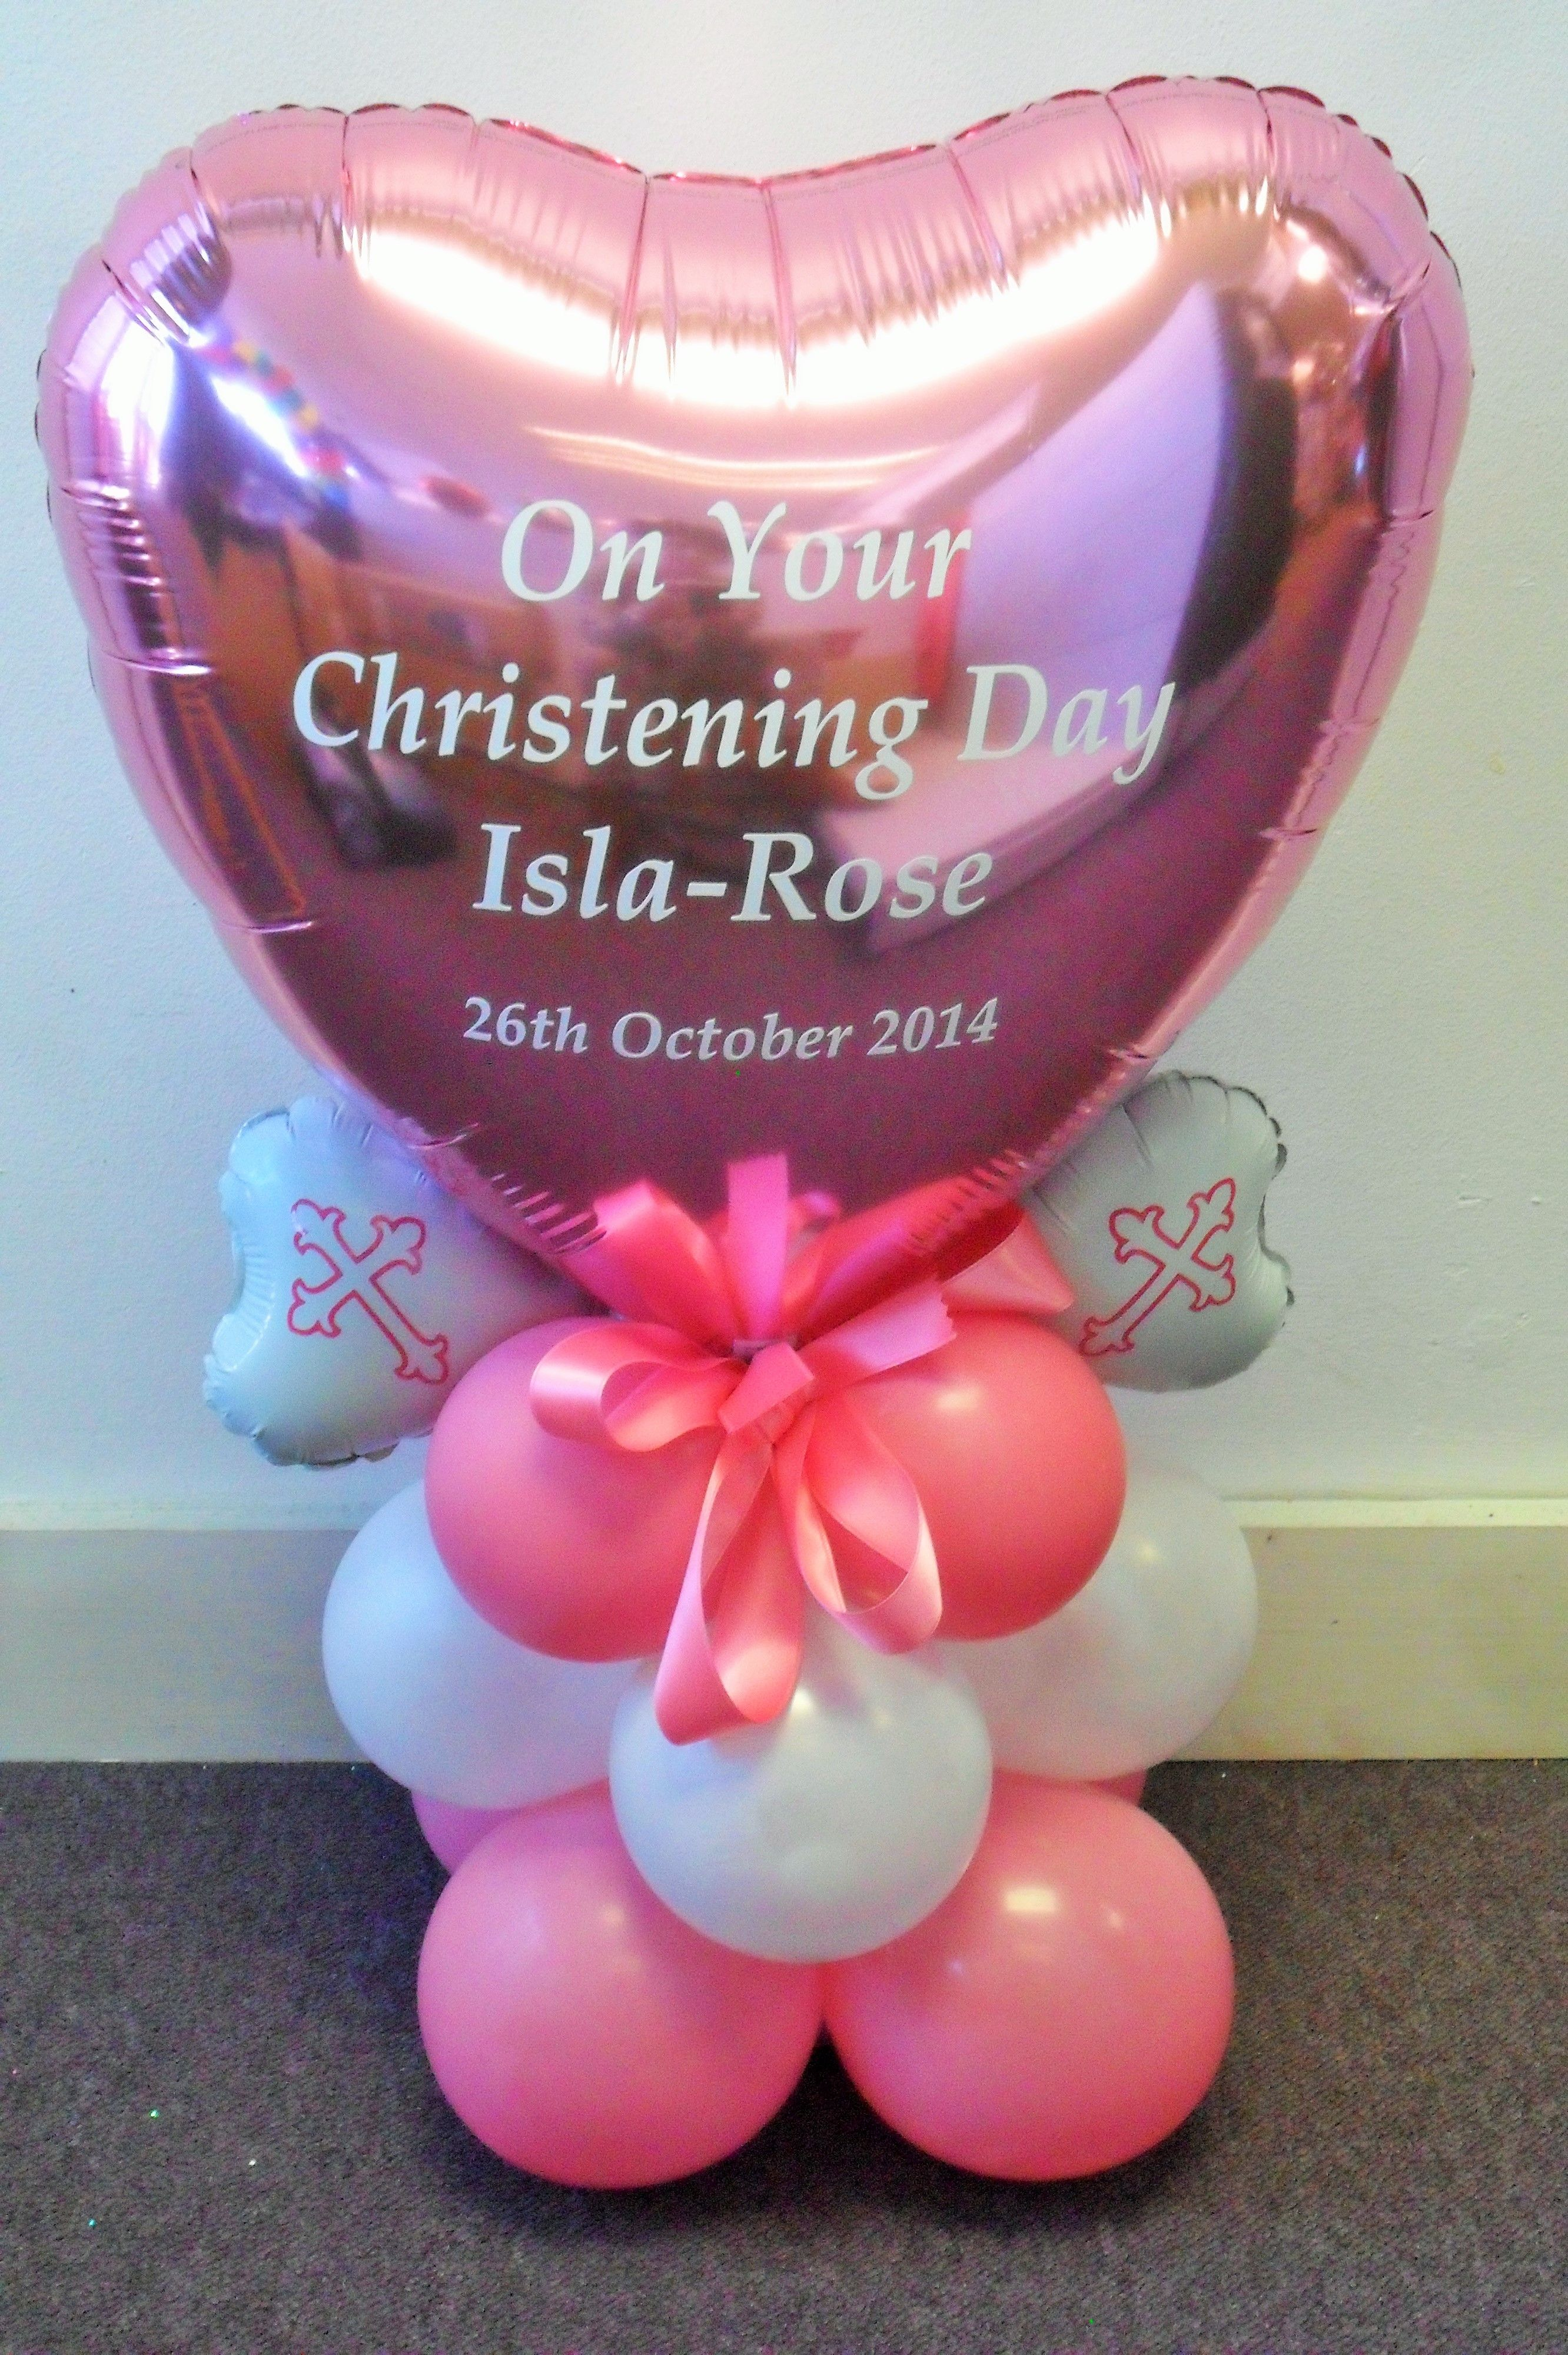 Christening day personalised centrepiece balloon